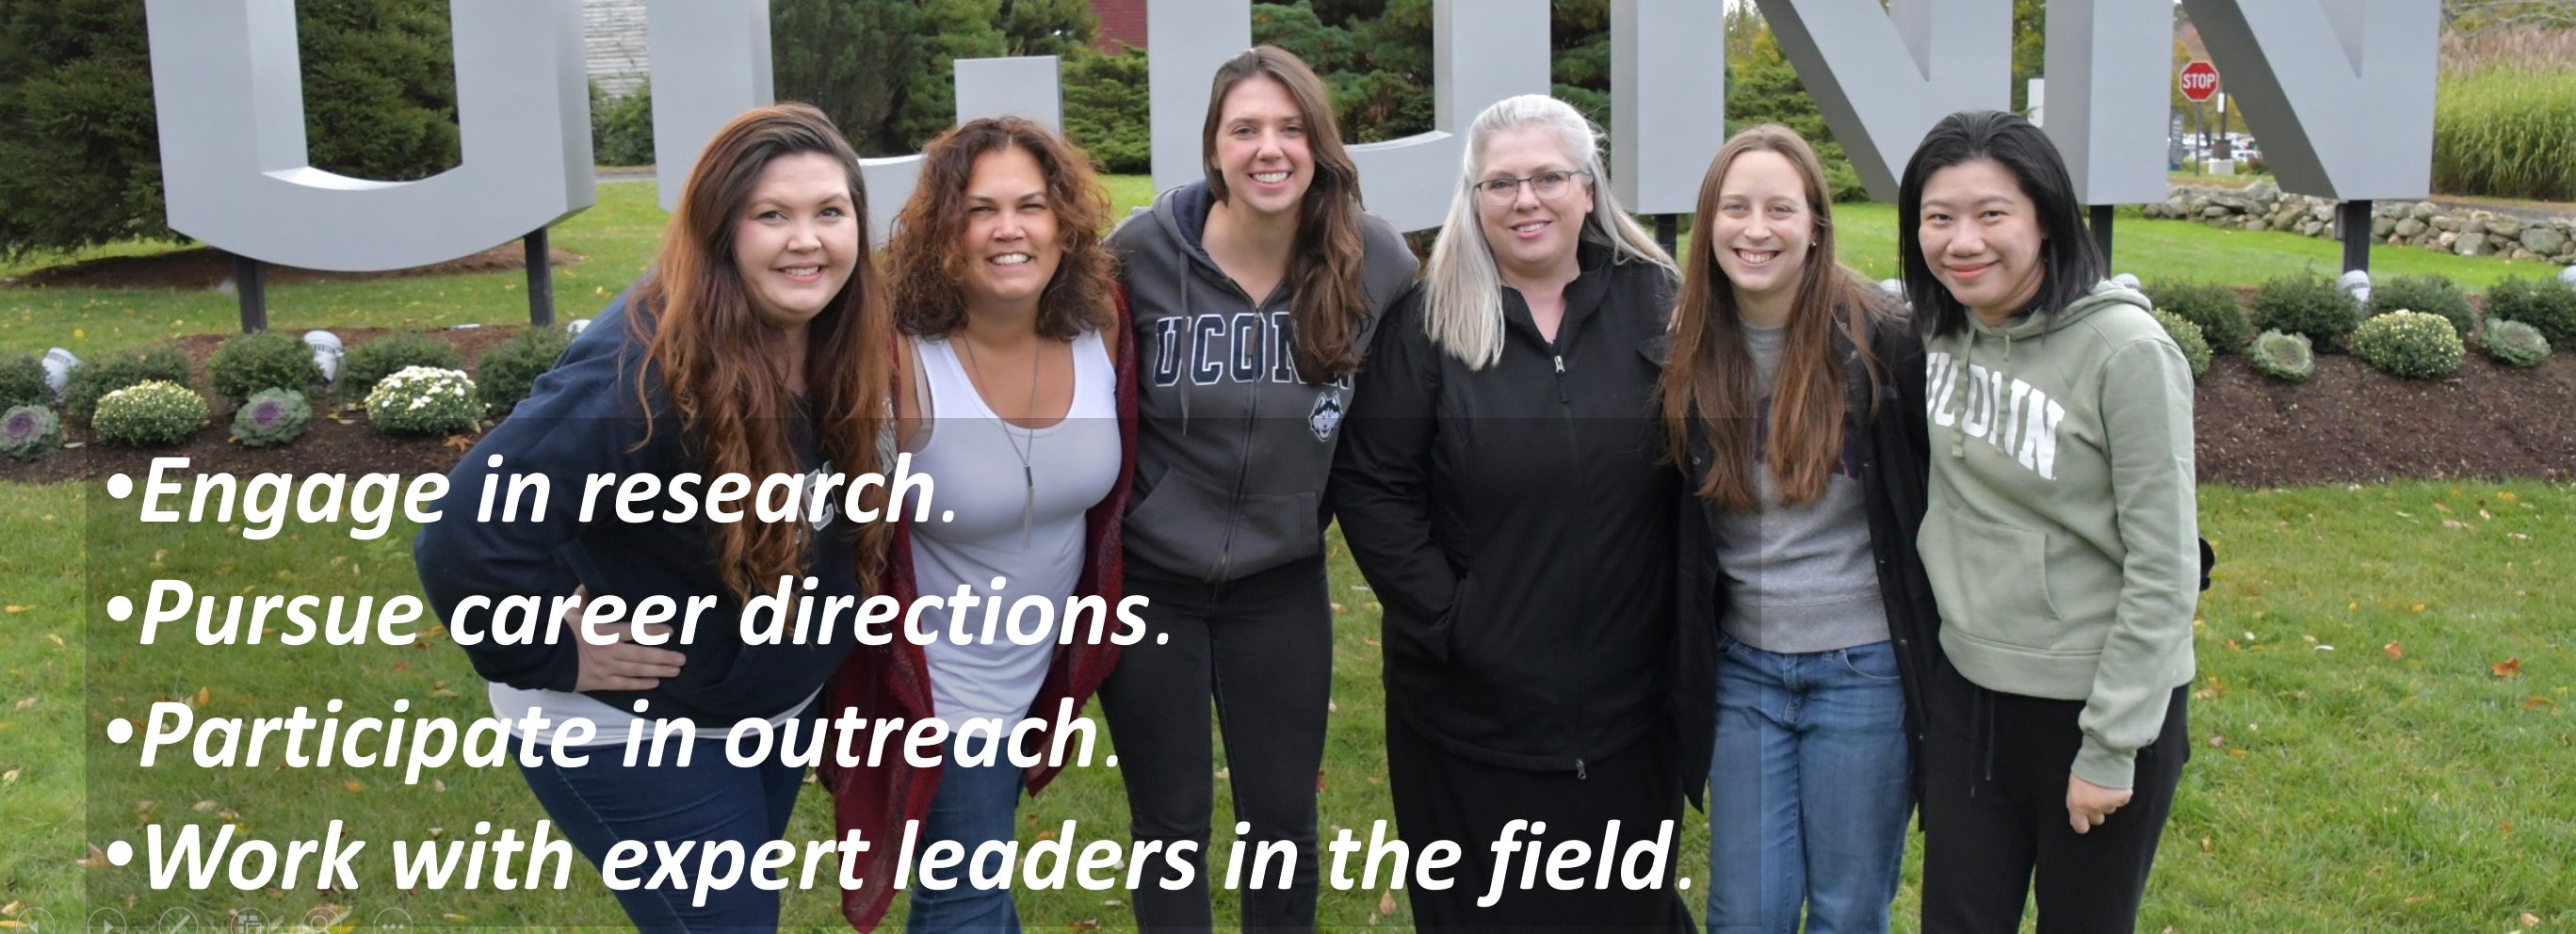 UConn Ph.D. Students in front of UConn sign with overlay of words saying Engage in research, pursue career directions, particpate in outreach, and work with expert leaders in the field.